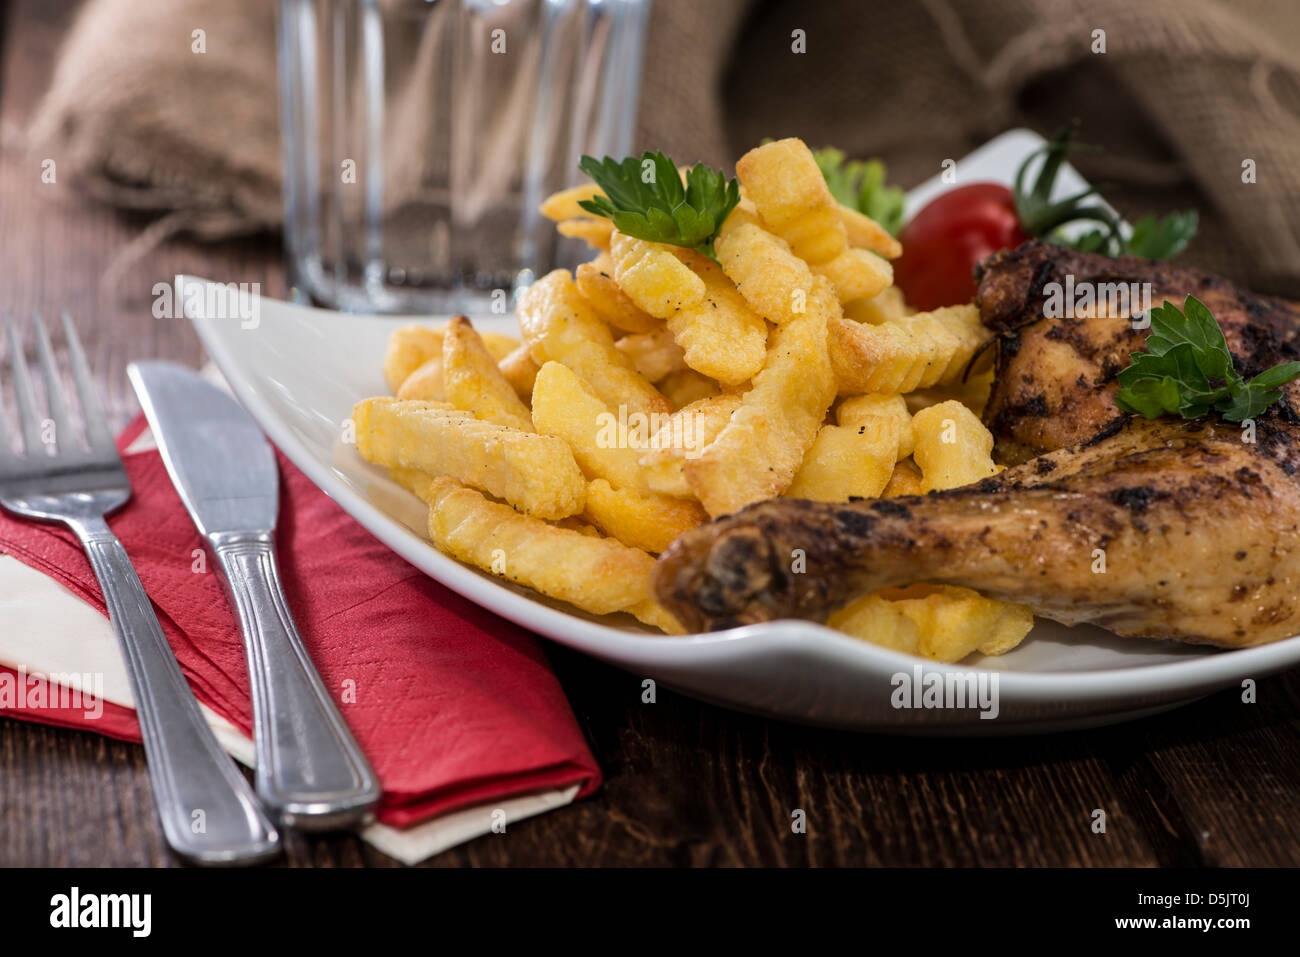 Grilled Chicken legs with Chips on a plate - Stock Image